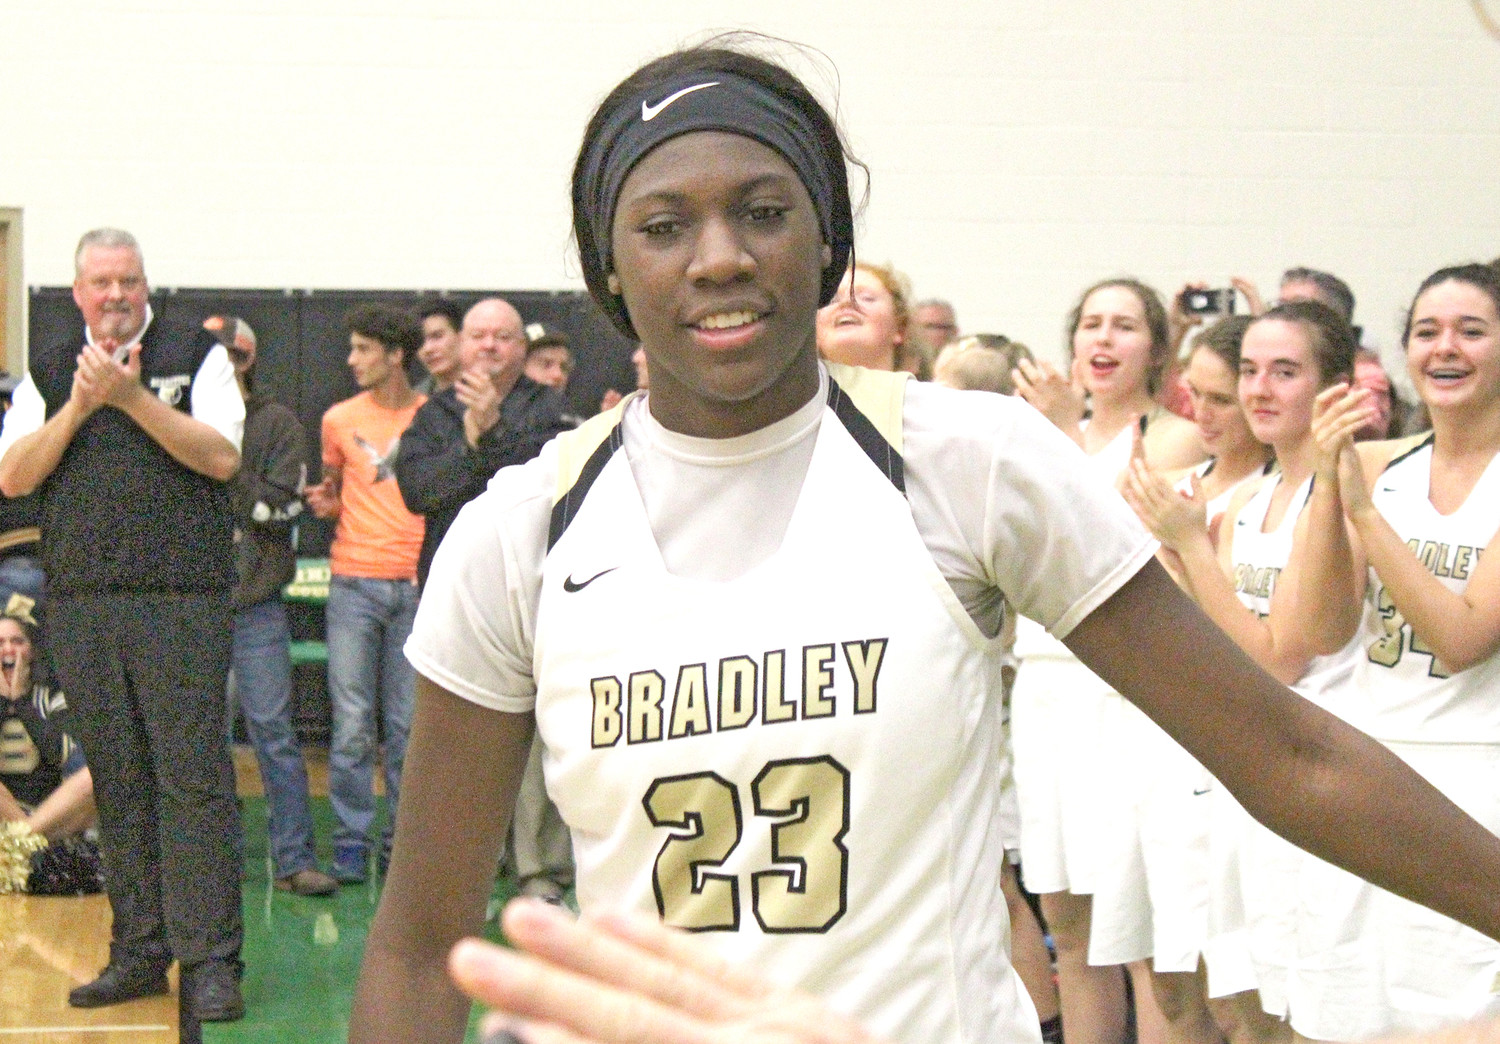 BRADLEY CENTRAL standout Rhyne Howard (23) is in New York today to play in the Jordan Brand Classic, while her teammates have accepted an invitation to play in the Nike Tournament of Champions in Phoenix this December.